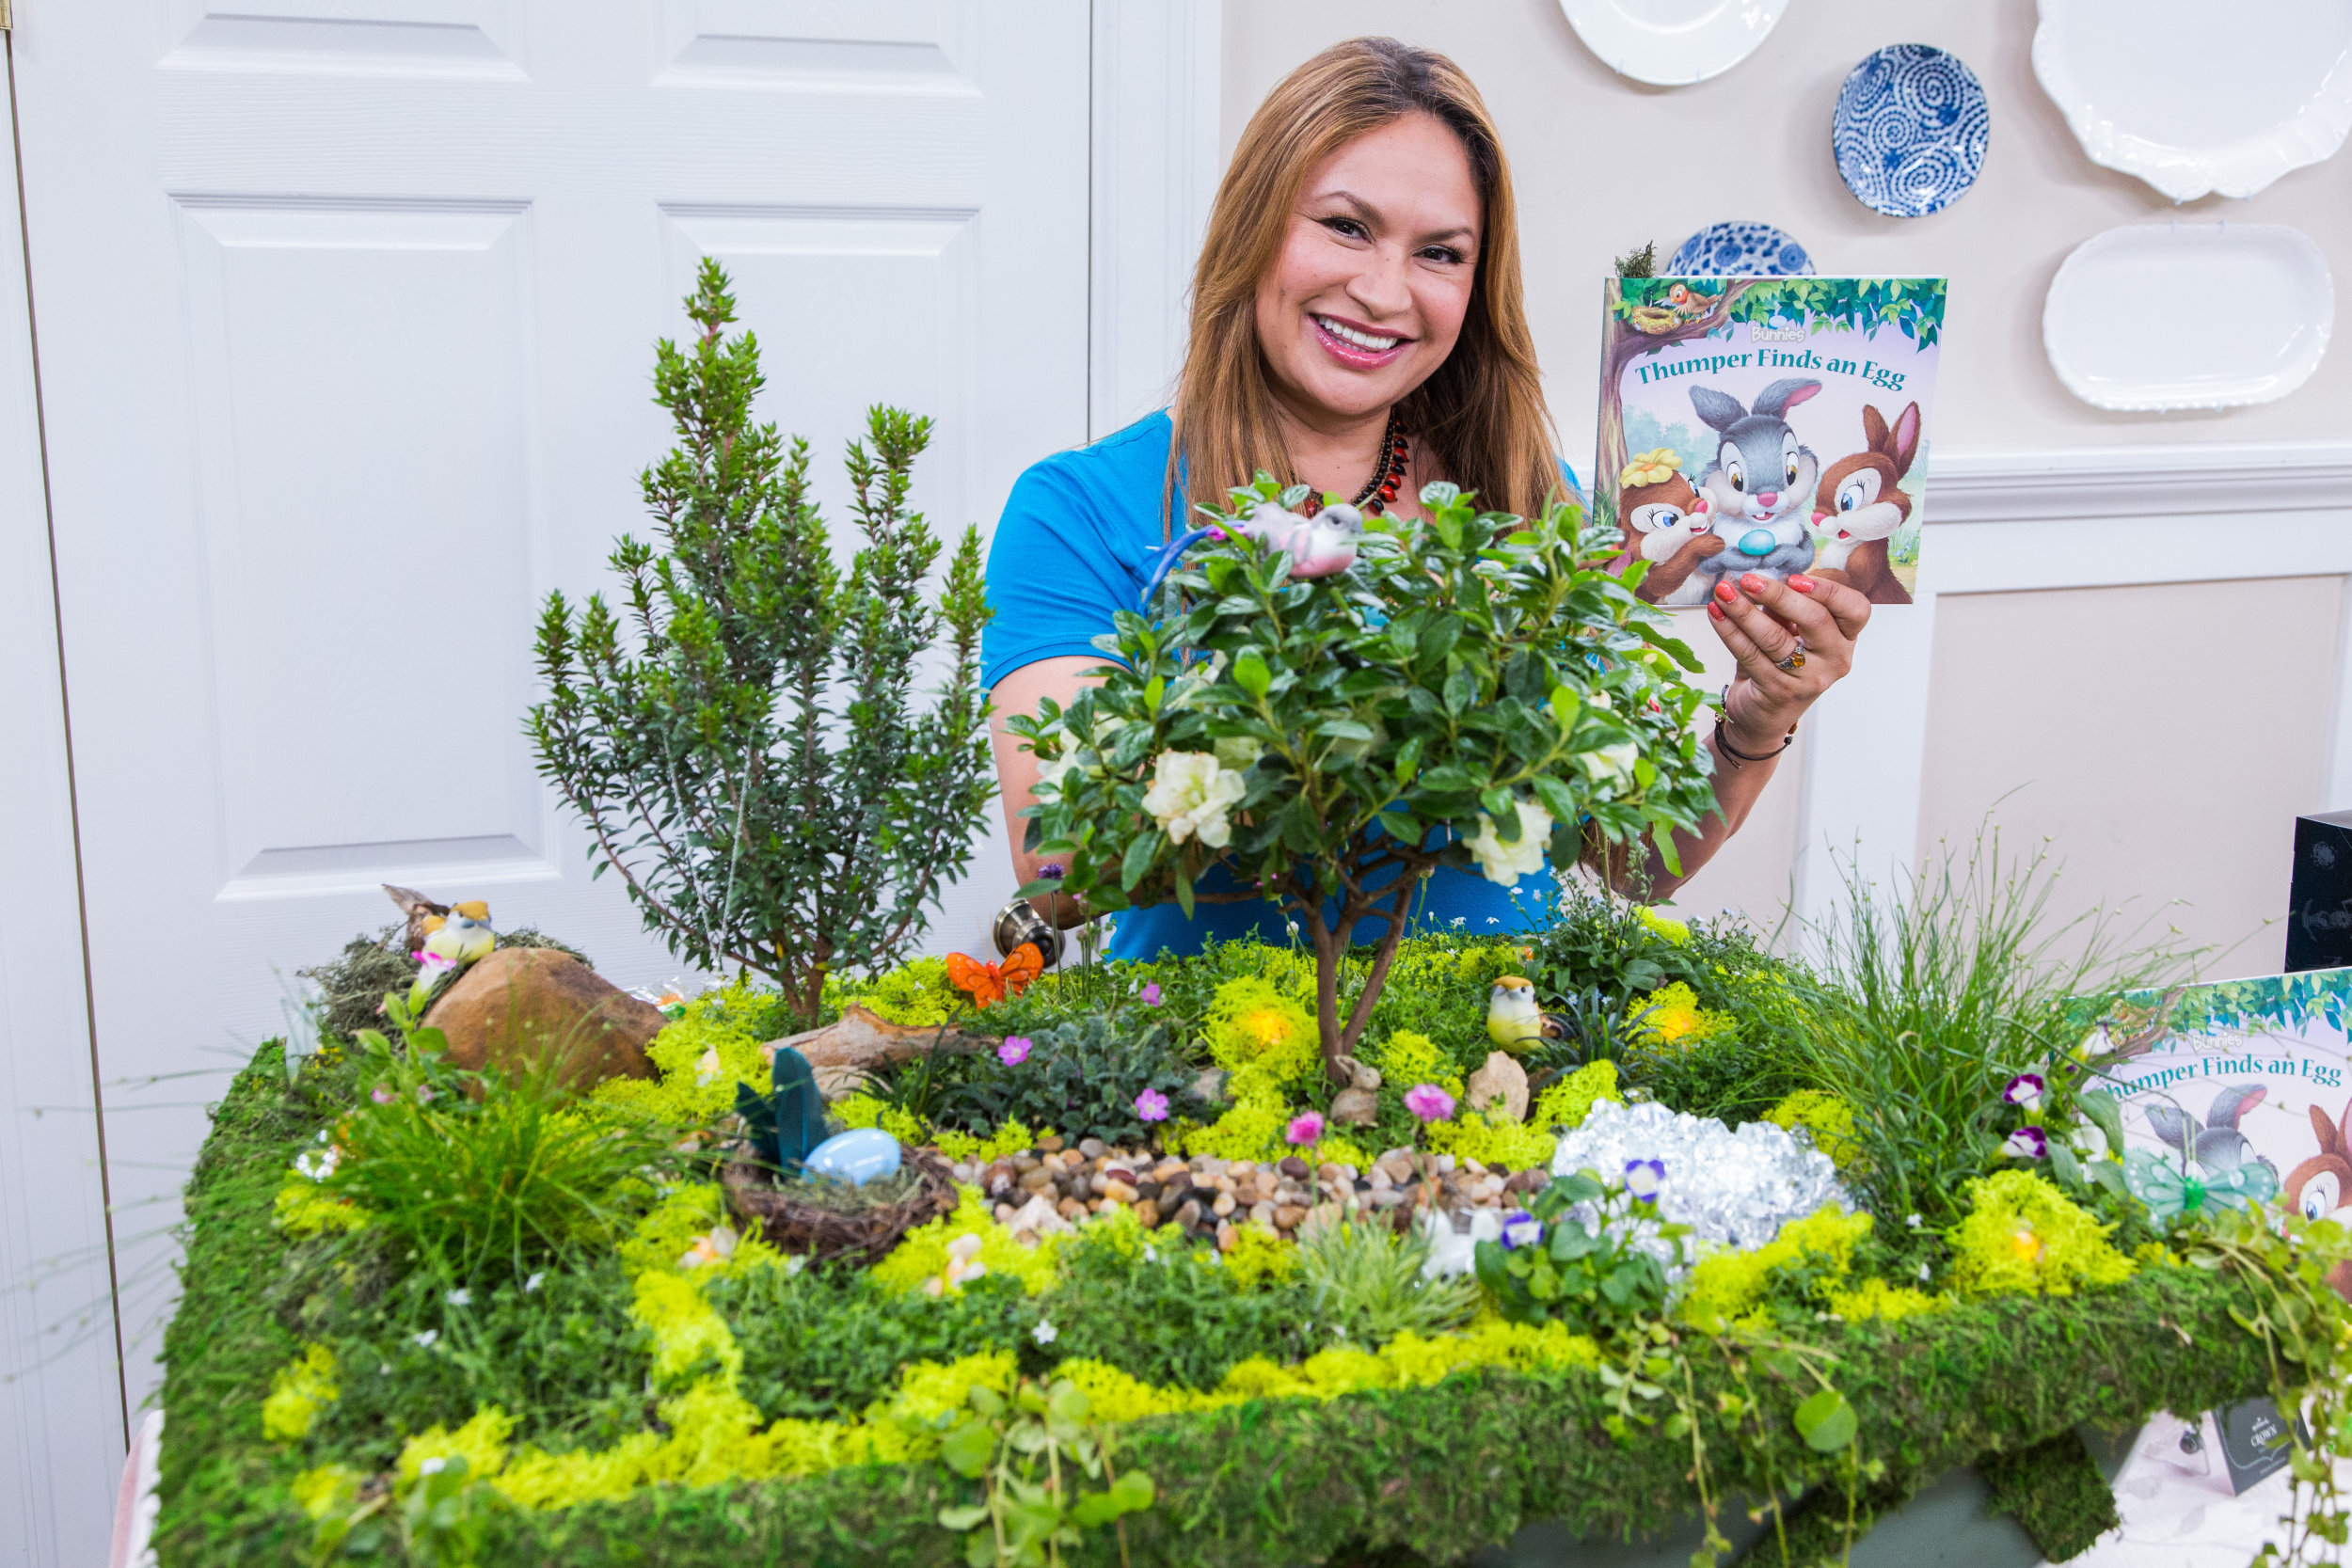 Do it yourself miniature easter garden video hallmark channel Home channel gardening